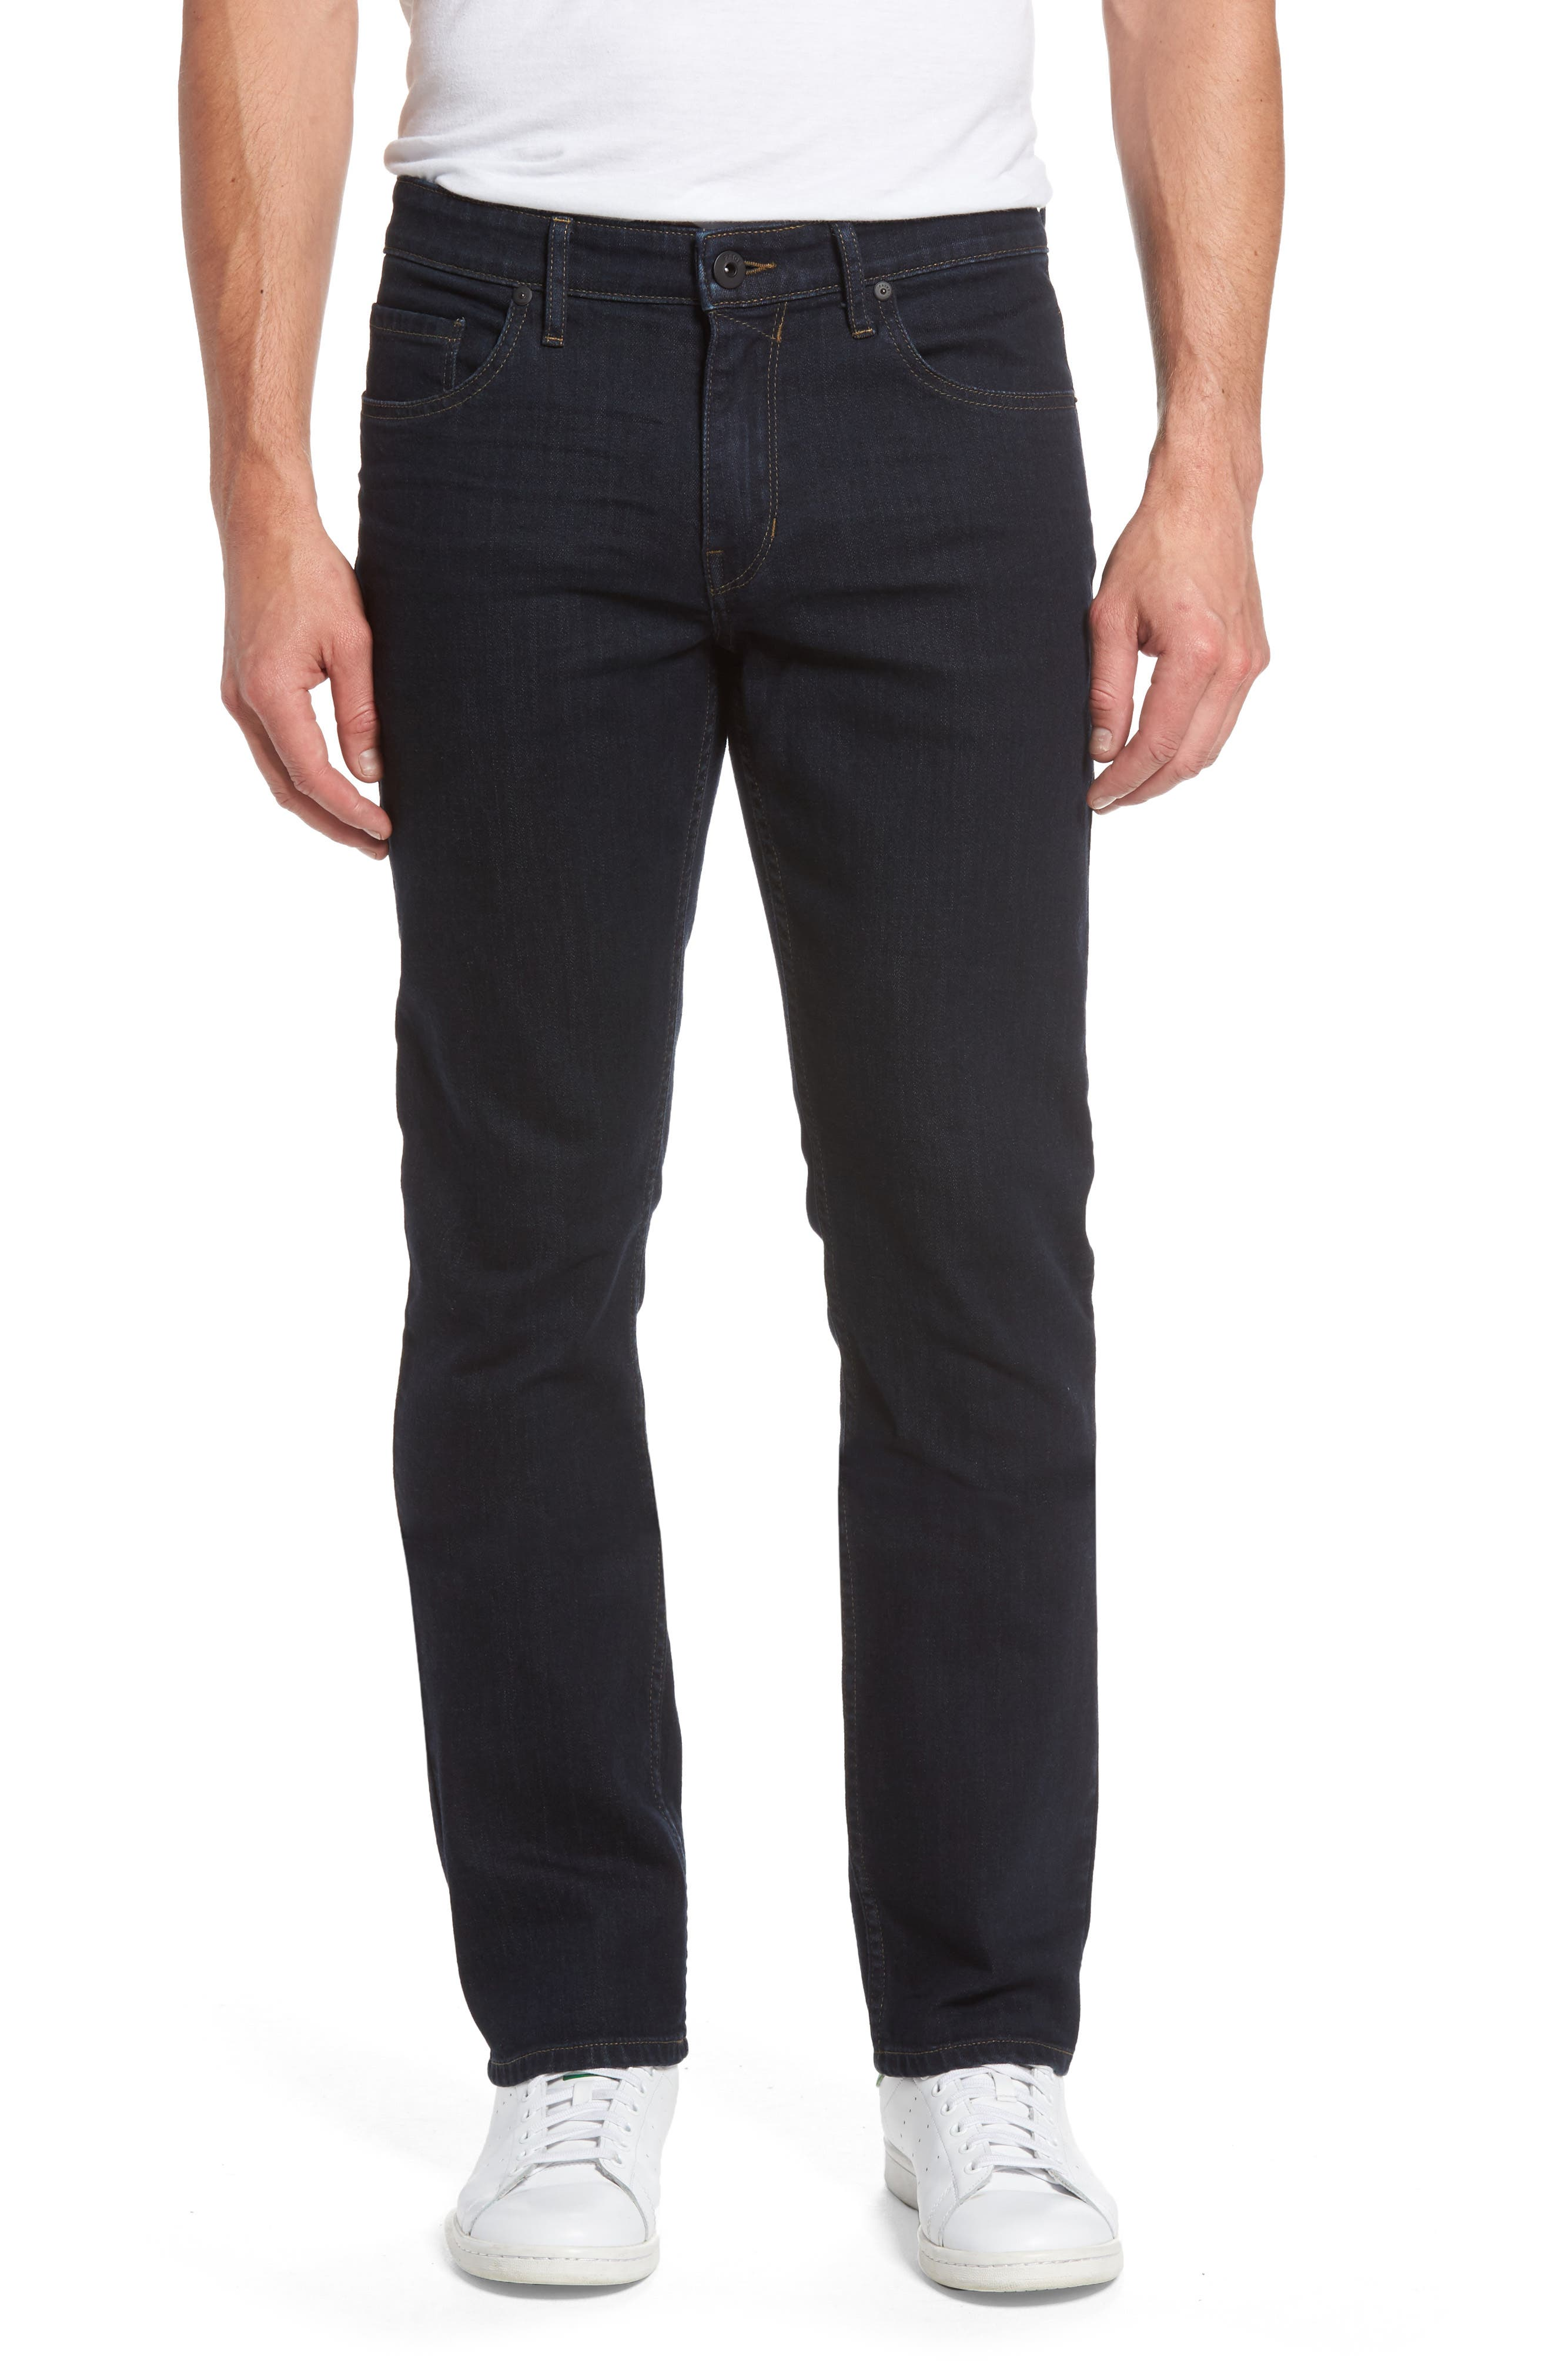 Normandie Straight Fit Jeans,                         Main,                         color, Marshall